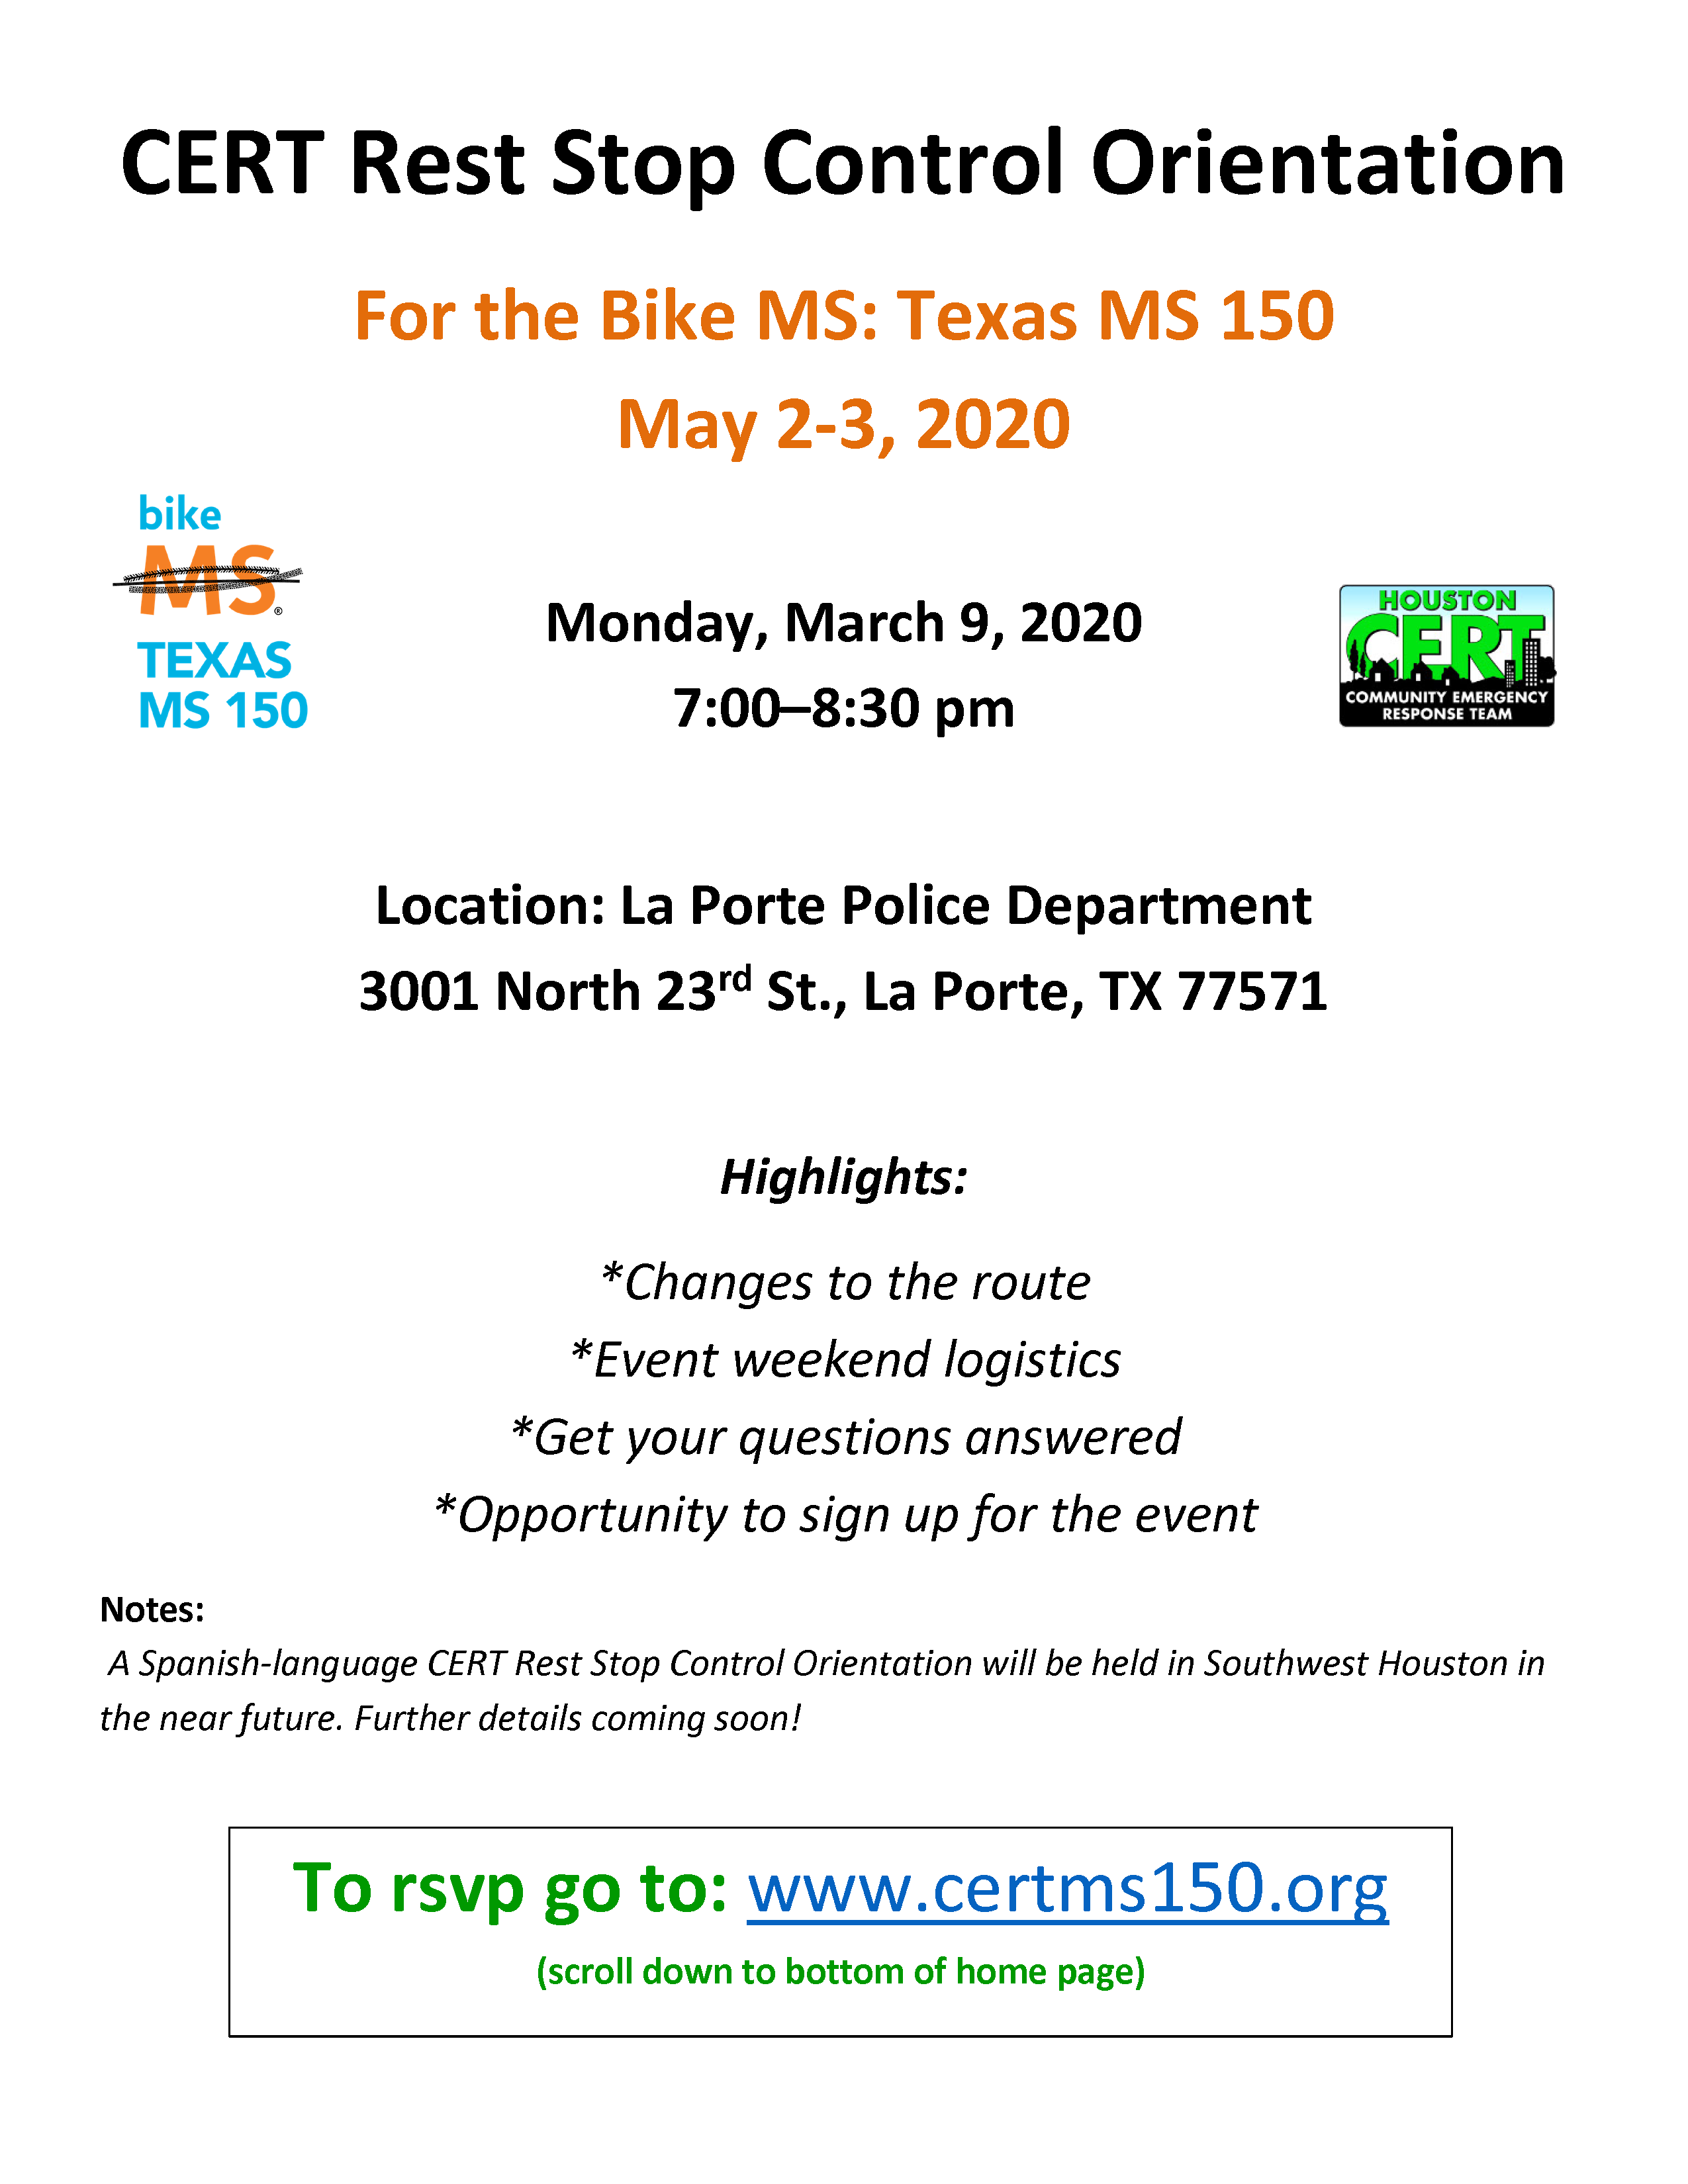 Bike MS Texas MS 150 - March 9 Rest Stop Control Orientation